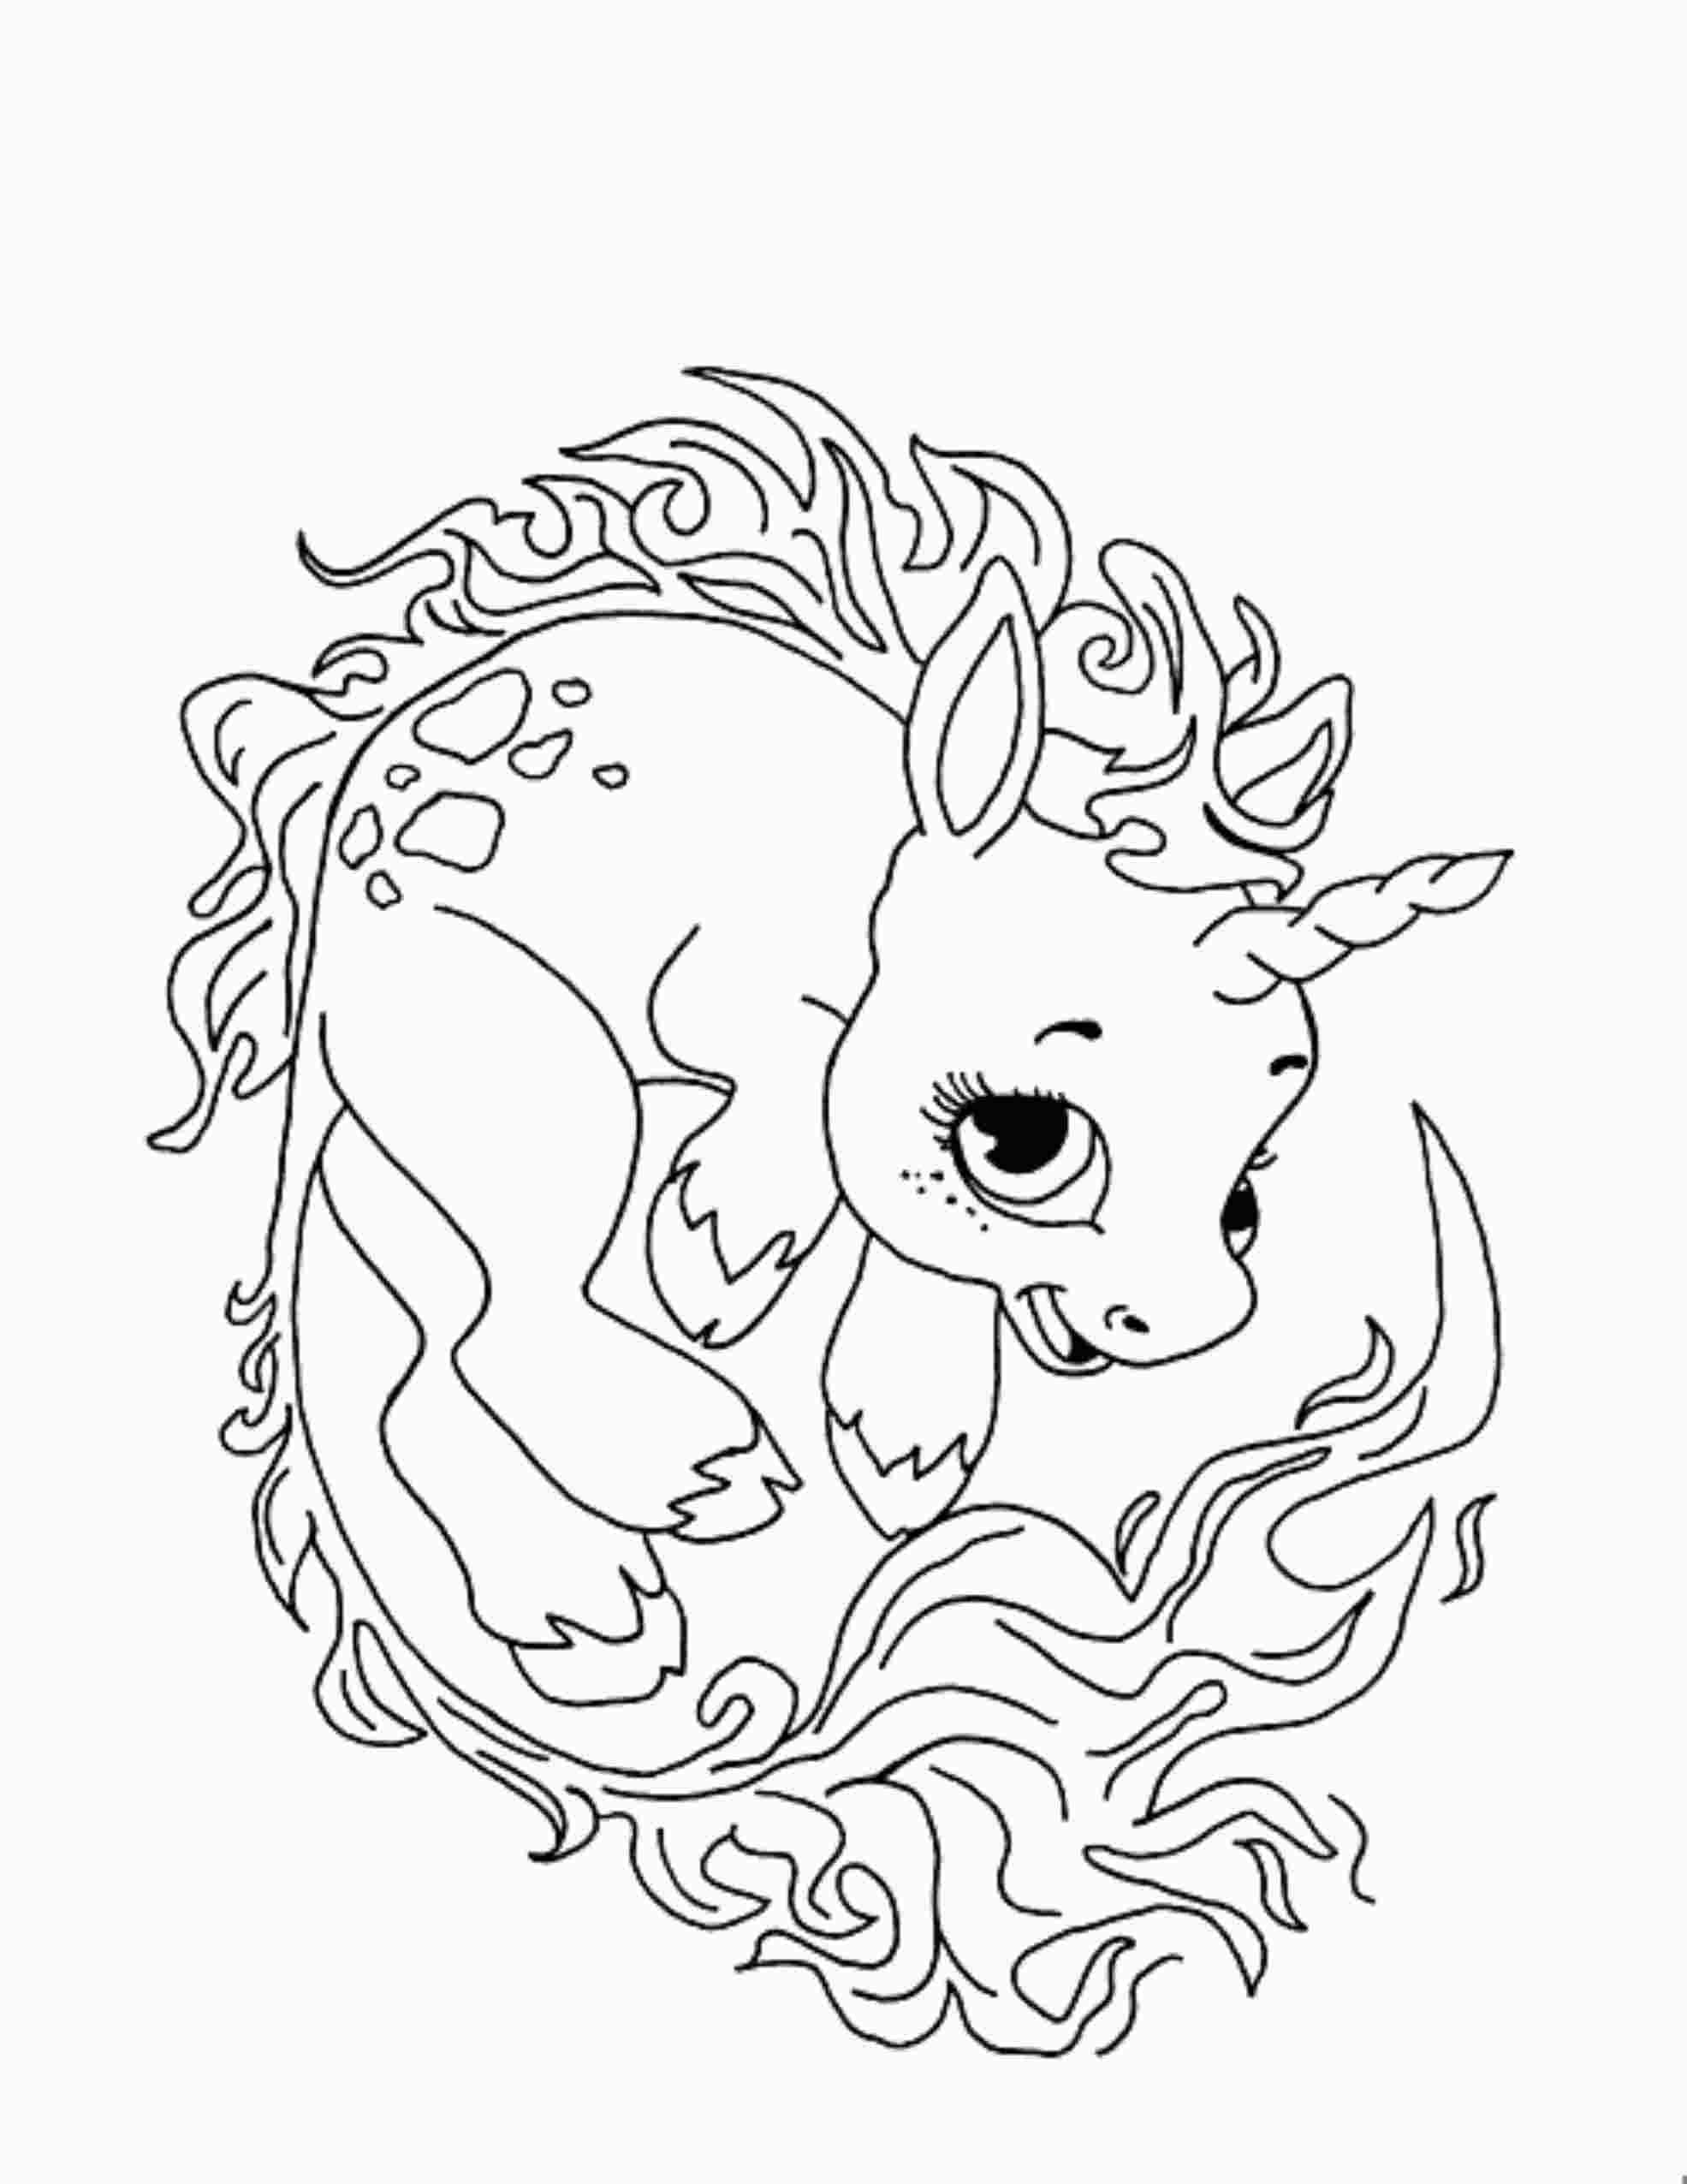 - Jojo Unicorn Coloring Page (With Images) Mermaid Coloring Pages